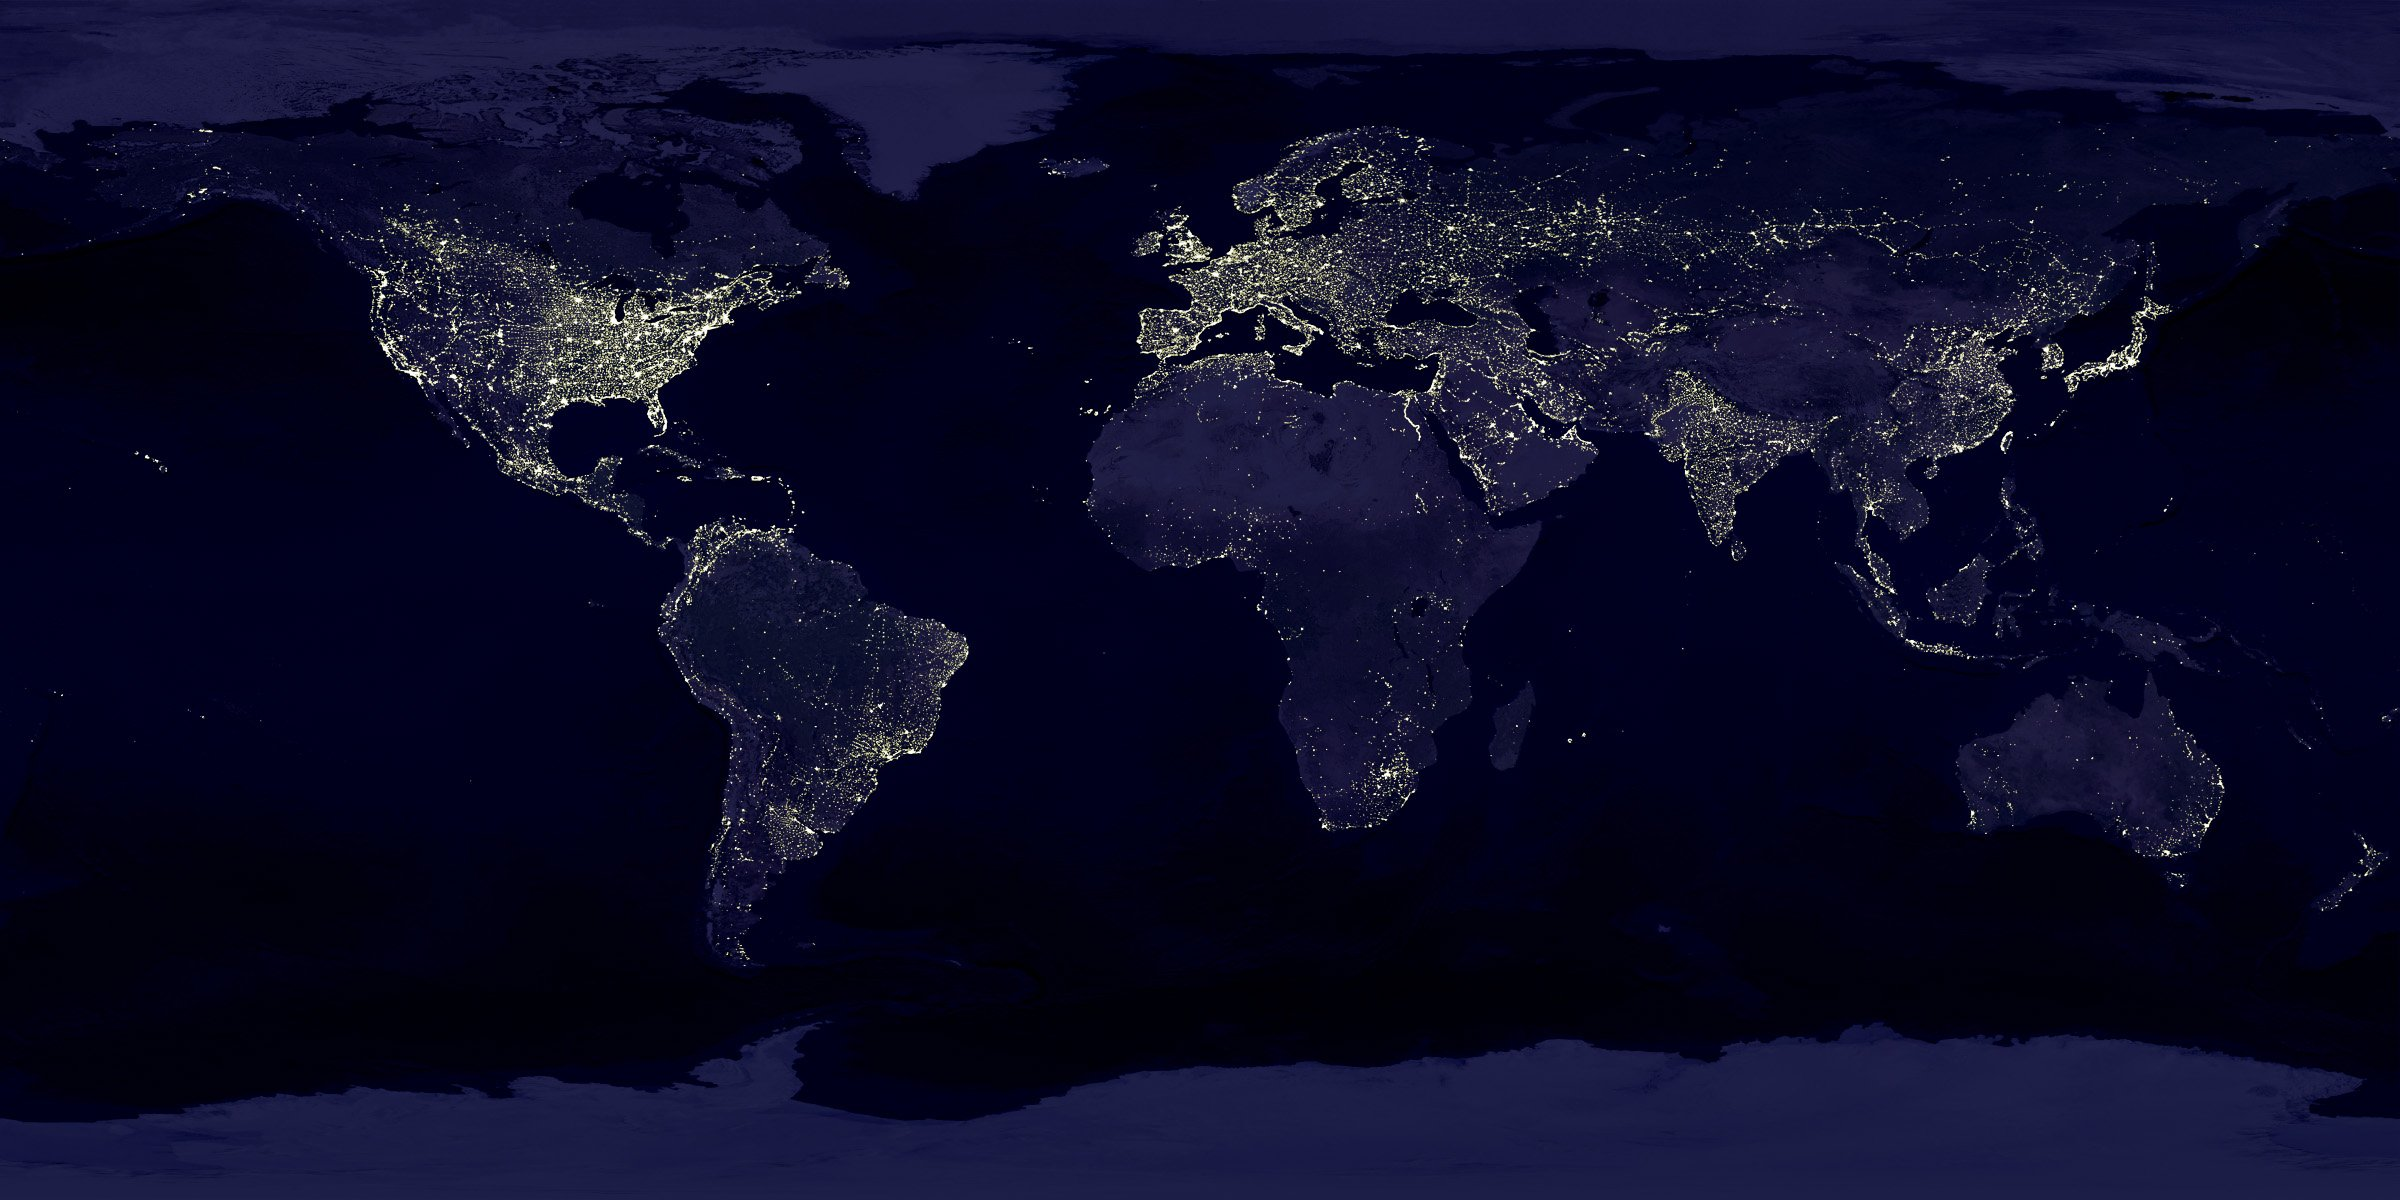 earth earth at night night lights